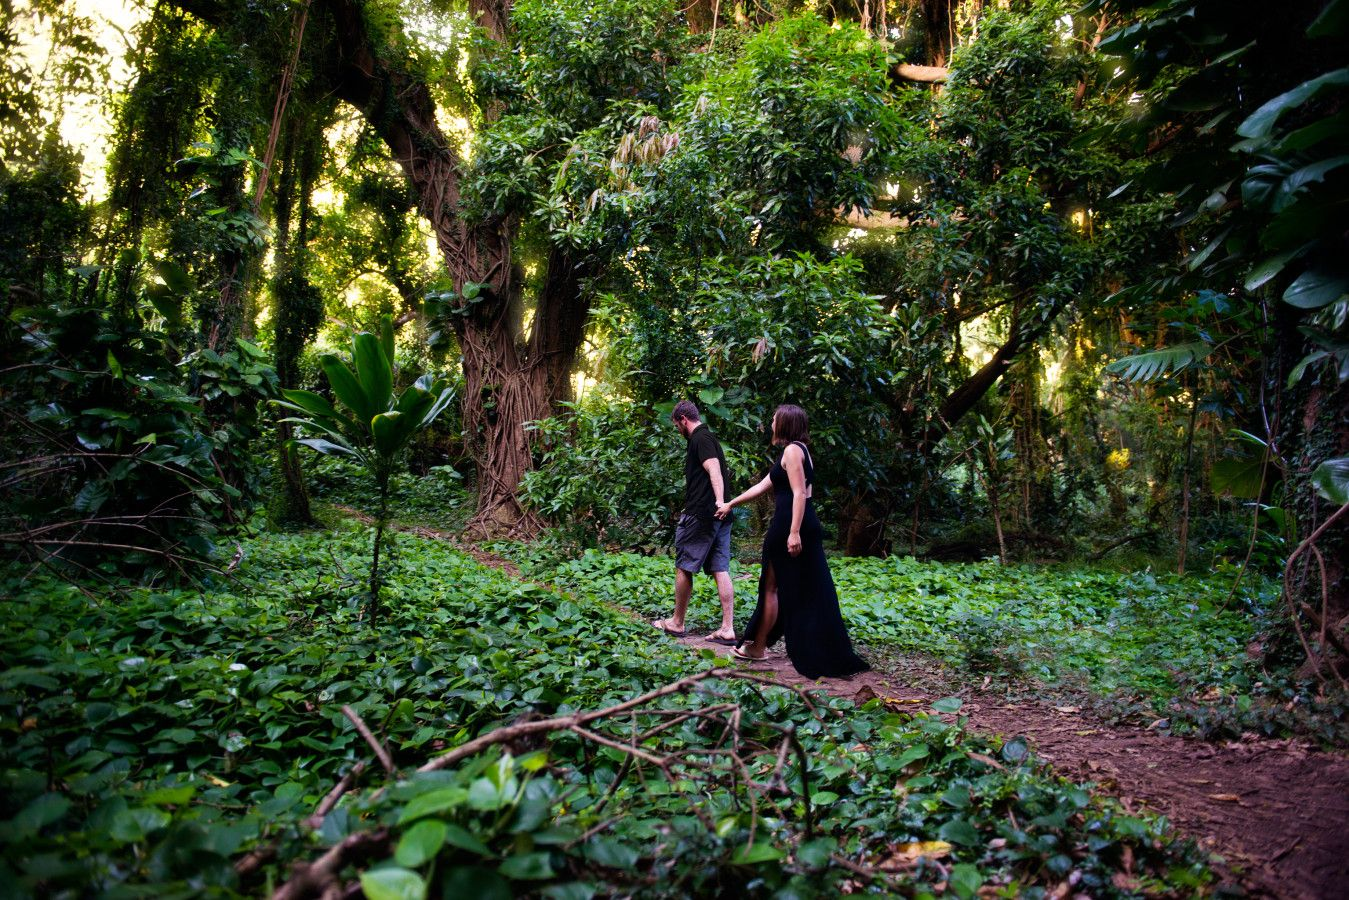 Walking through a jungle in Hawaii. Maui. Oahu. Engagement Photo. Couple photo ideas. Ally Papko Photography & Design. International Wedding Photographer. Boudoir Photographer. Winnipeg www.allypapko.com